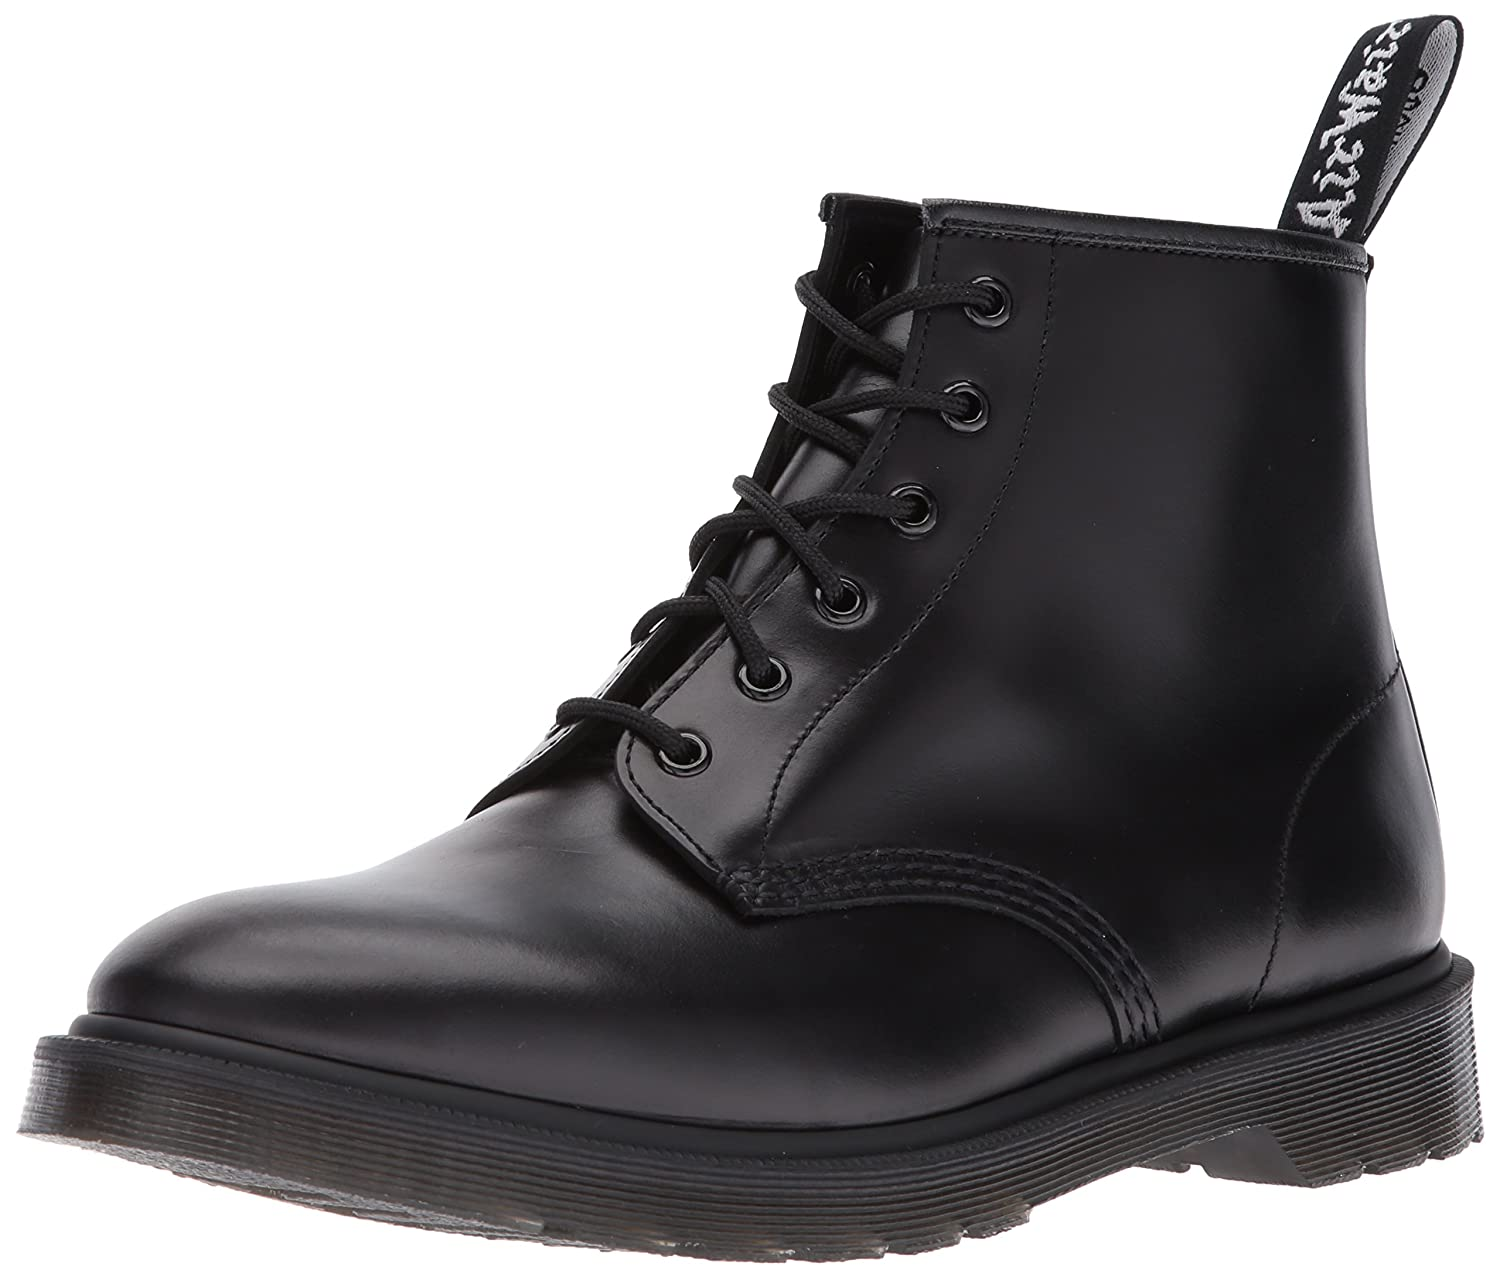 Dr.Martens Noir Mens Boots 101 6 B077PH87QH Eyelet Leather Boots Noir 771263a - digitalweb.space